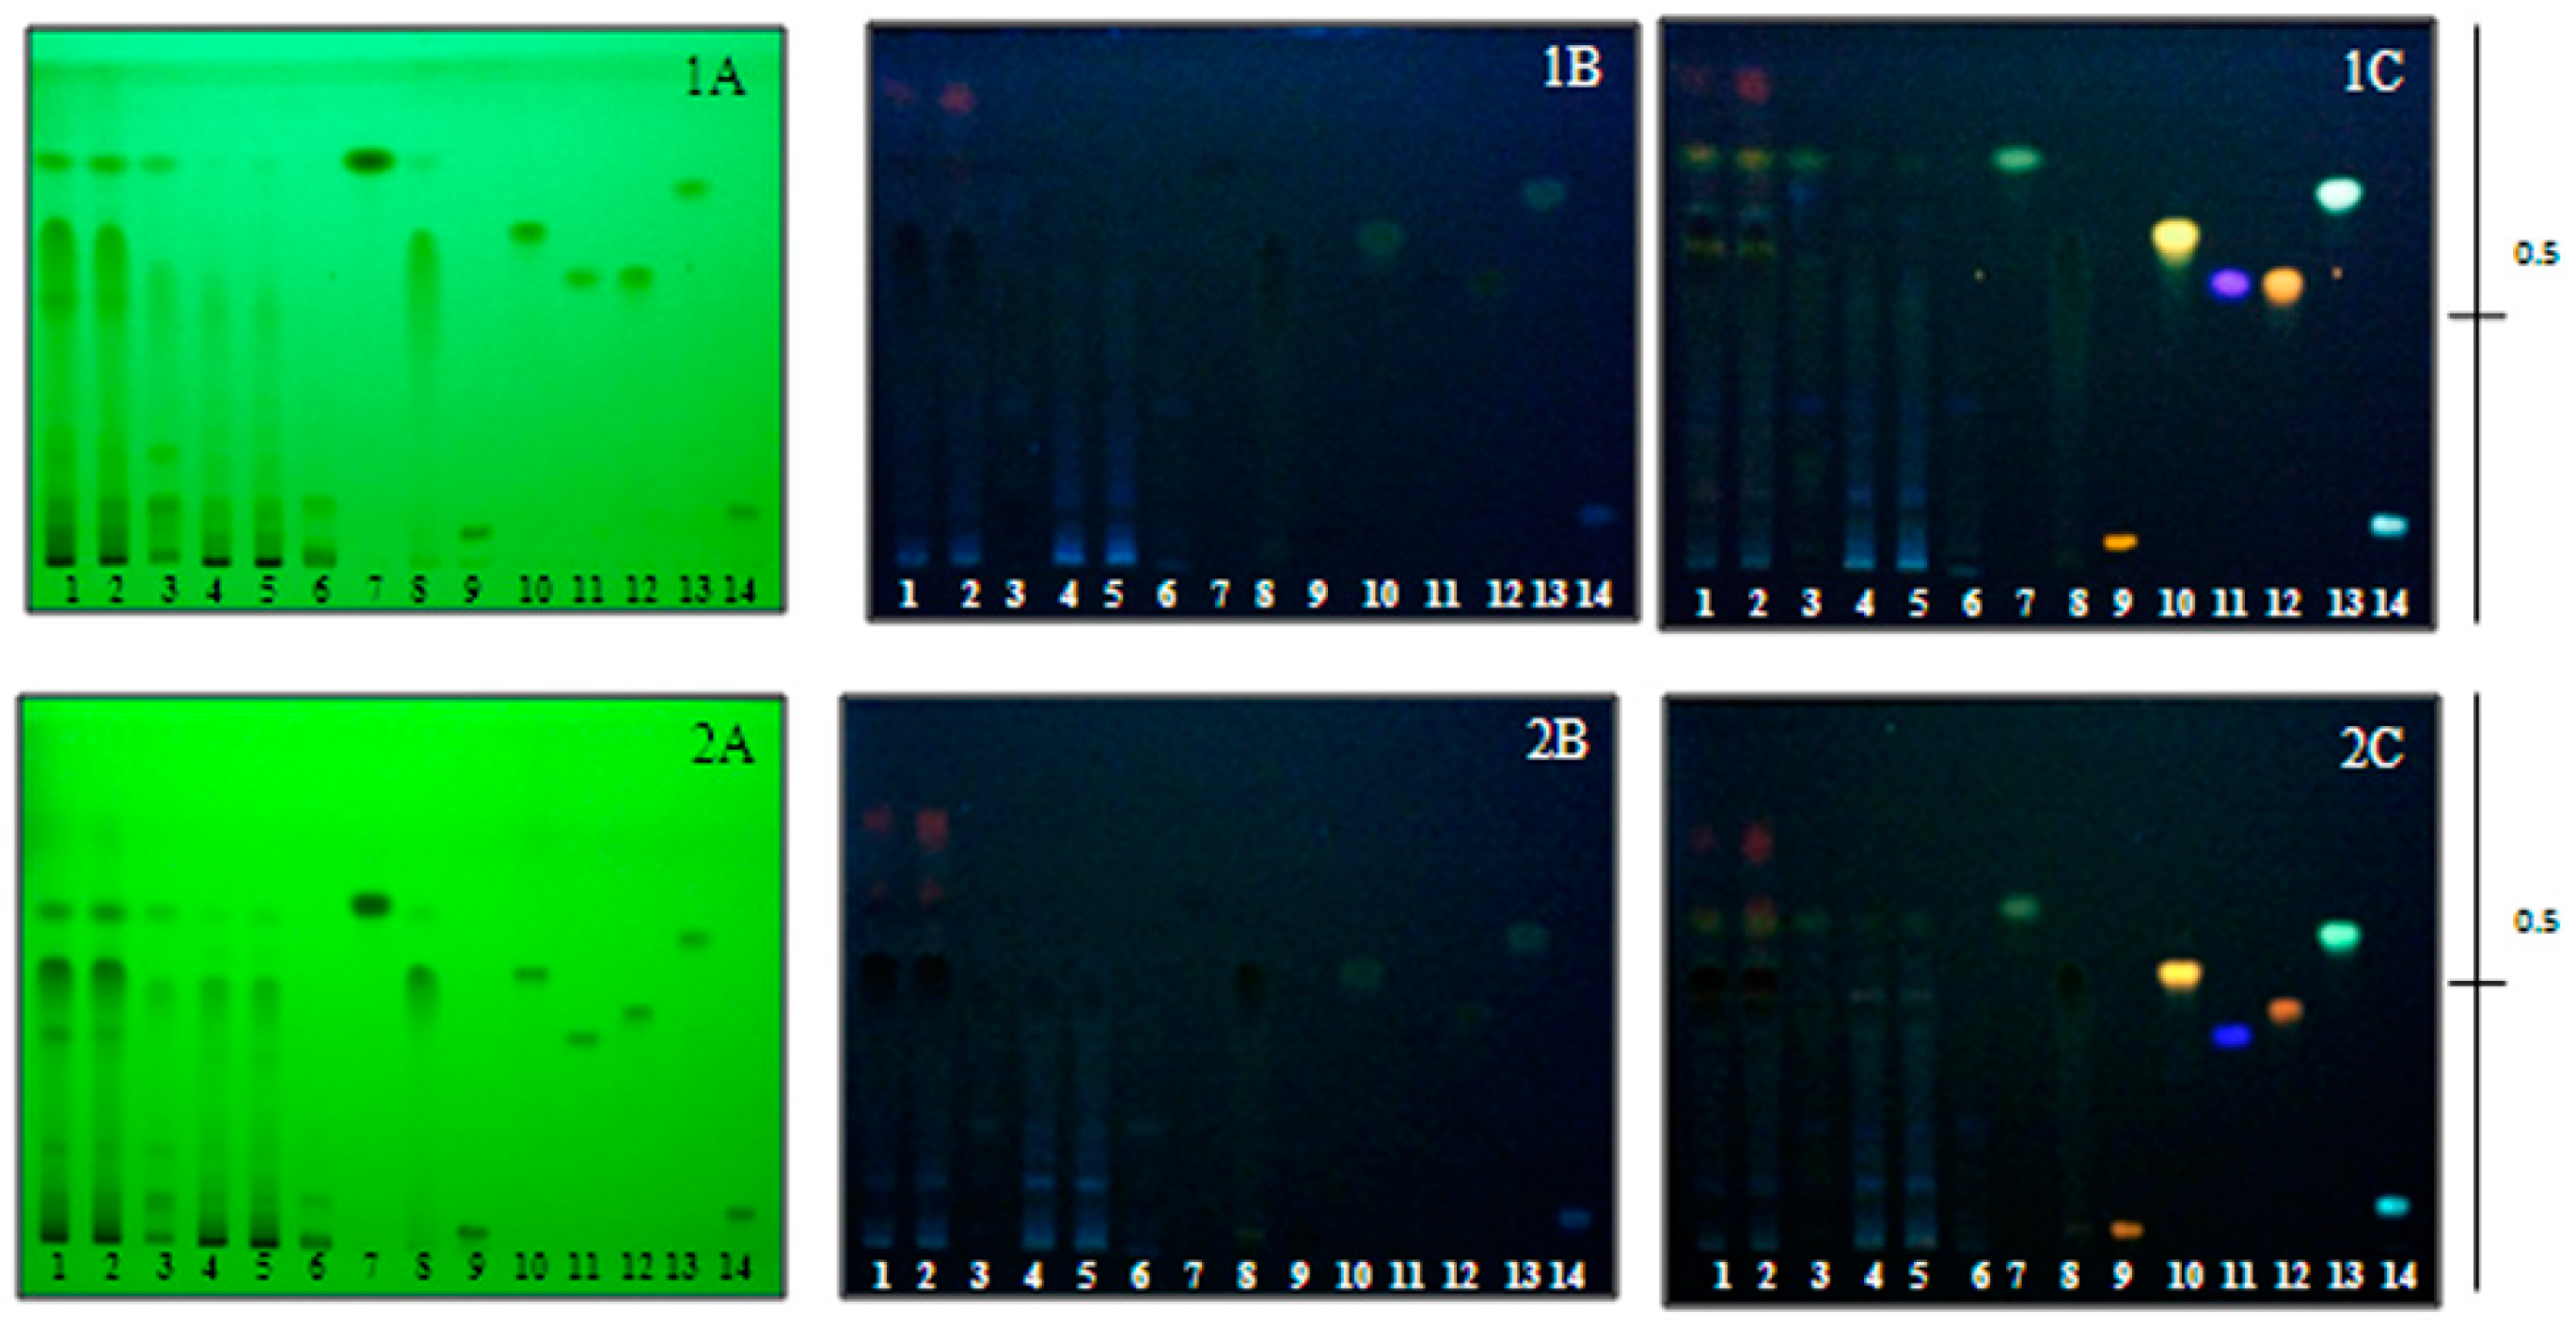 phytochemical analysis of abutilon indicum Powdered abutilon indicum leaves were extracted from chloroform thin layer chromatography technique in combination with column chromatography was used to separate the chemically active constituents the constituents were subjected to ir, nmr, eims analysis to identify the compounds contained in.